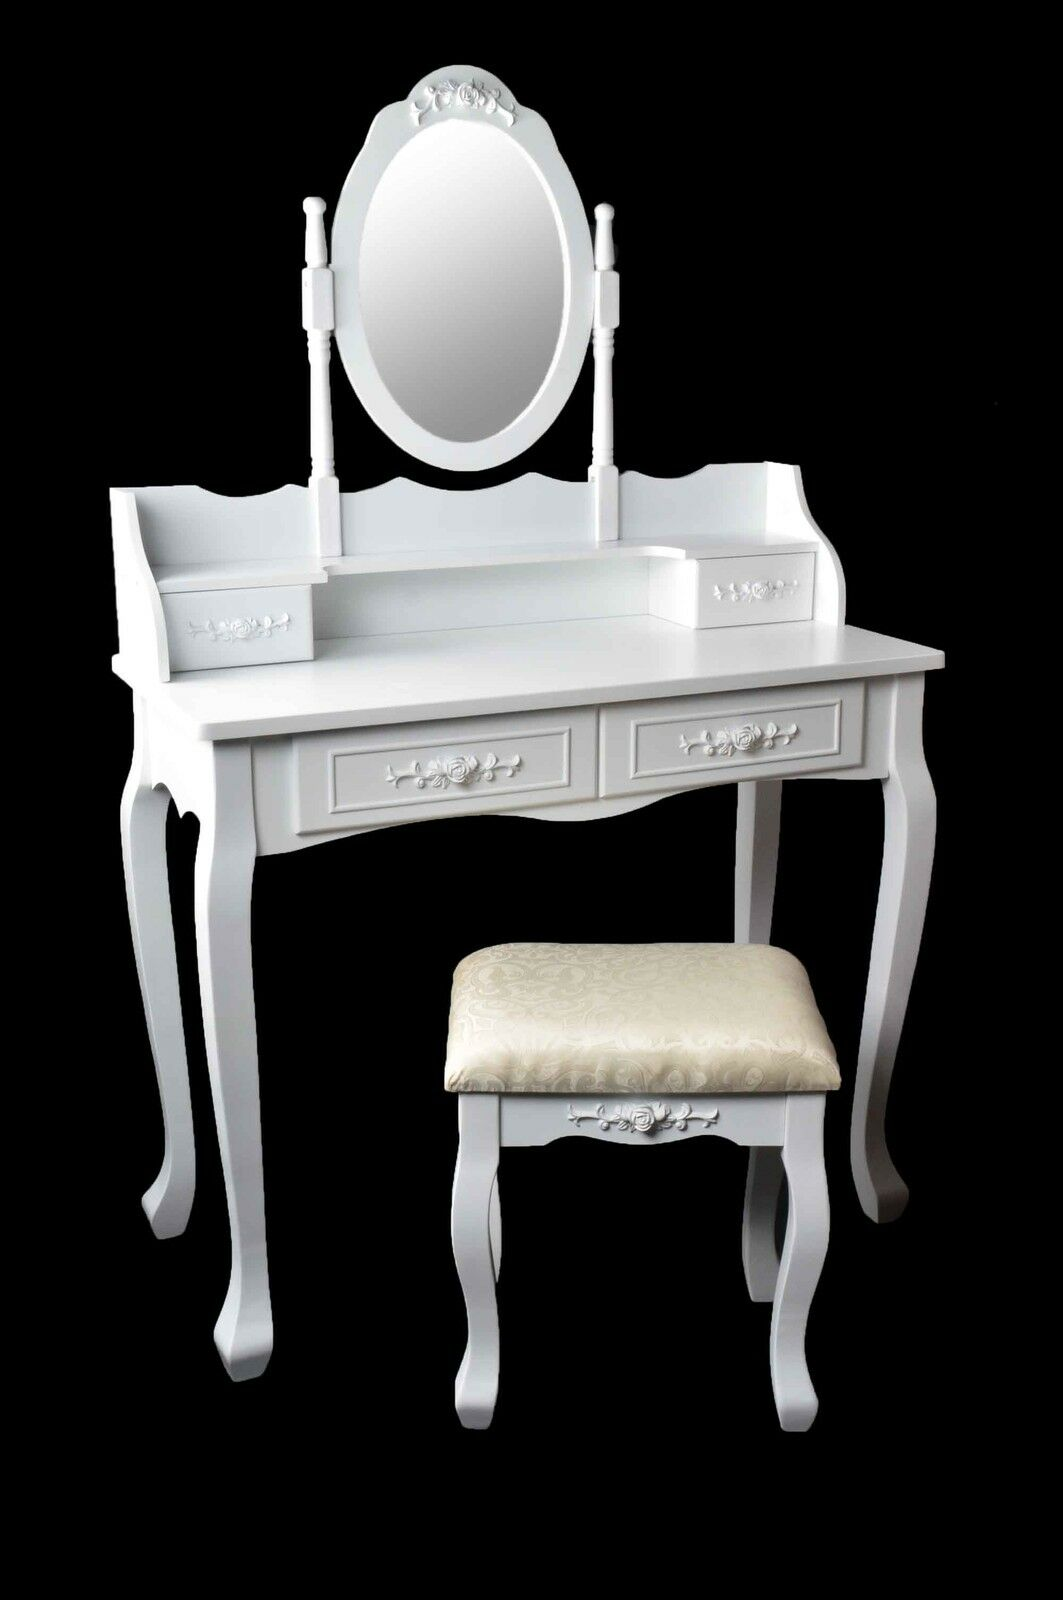 Marry coiffeuse coiffeuse coiffeuse avec miroir tabouret vintage blanc - Coiffeuse miroir tabouret ...